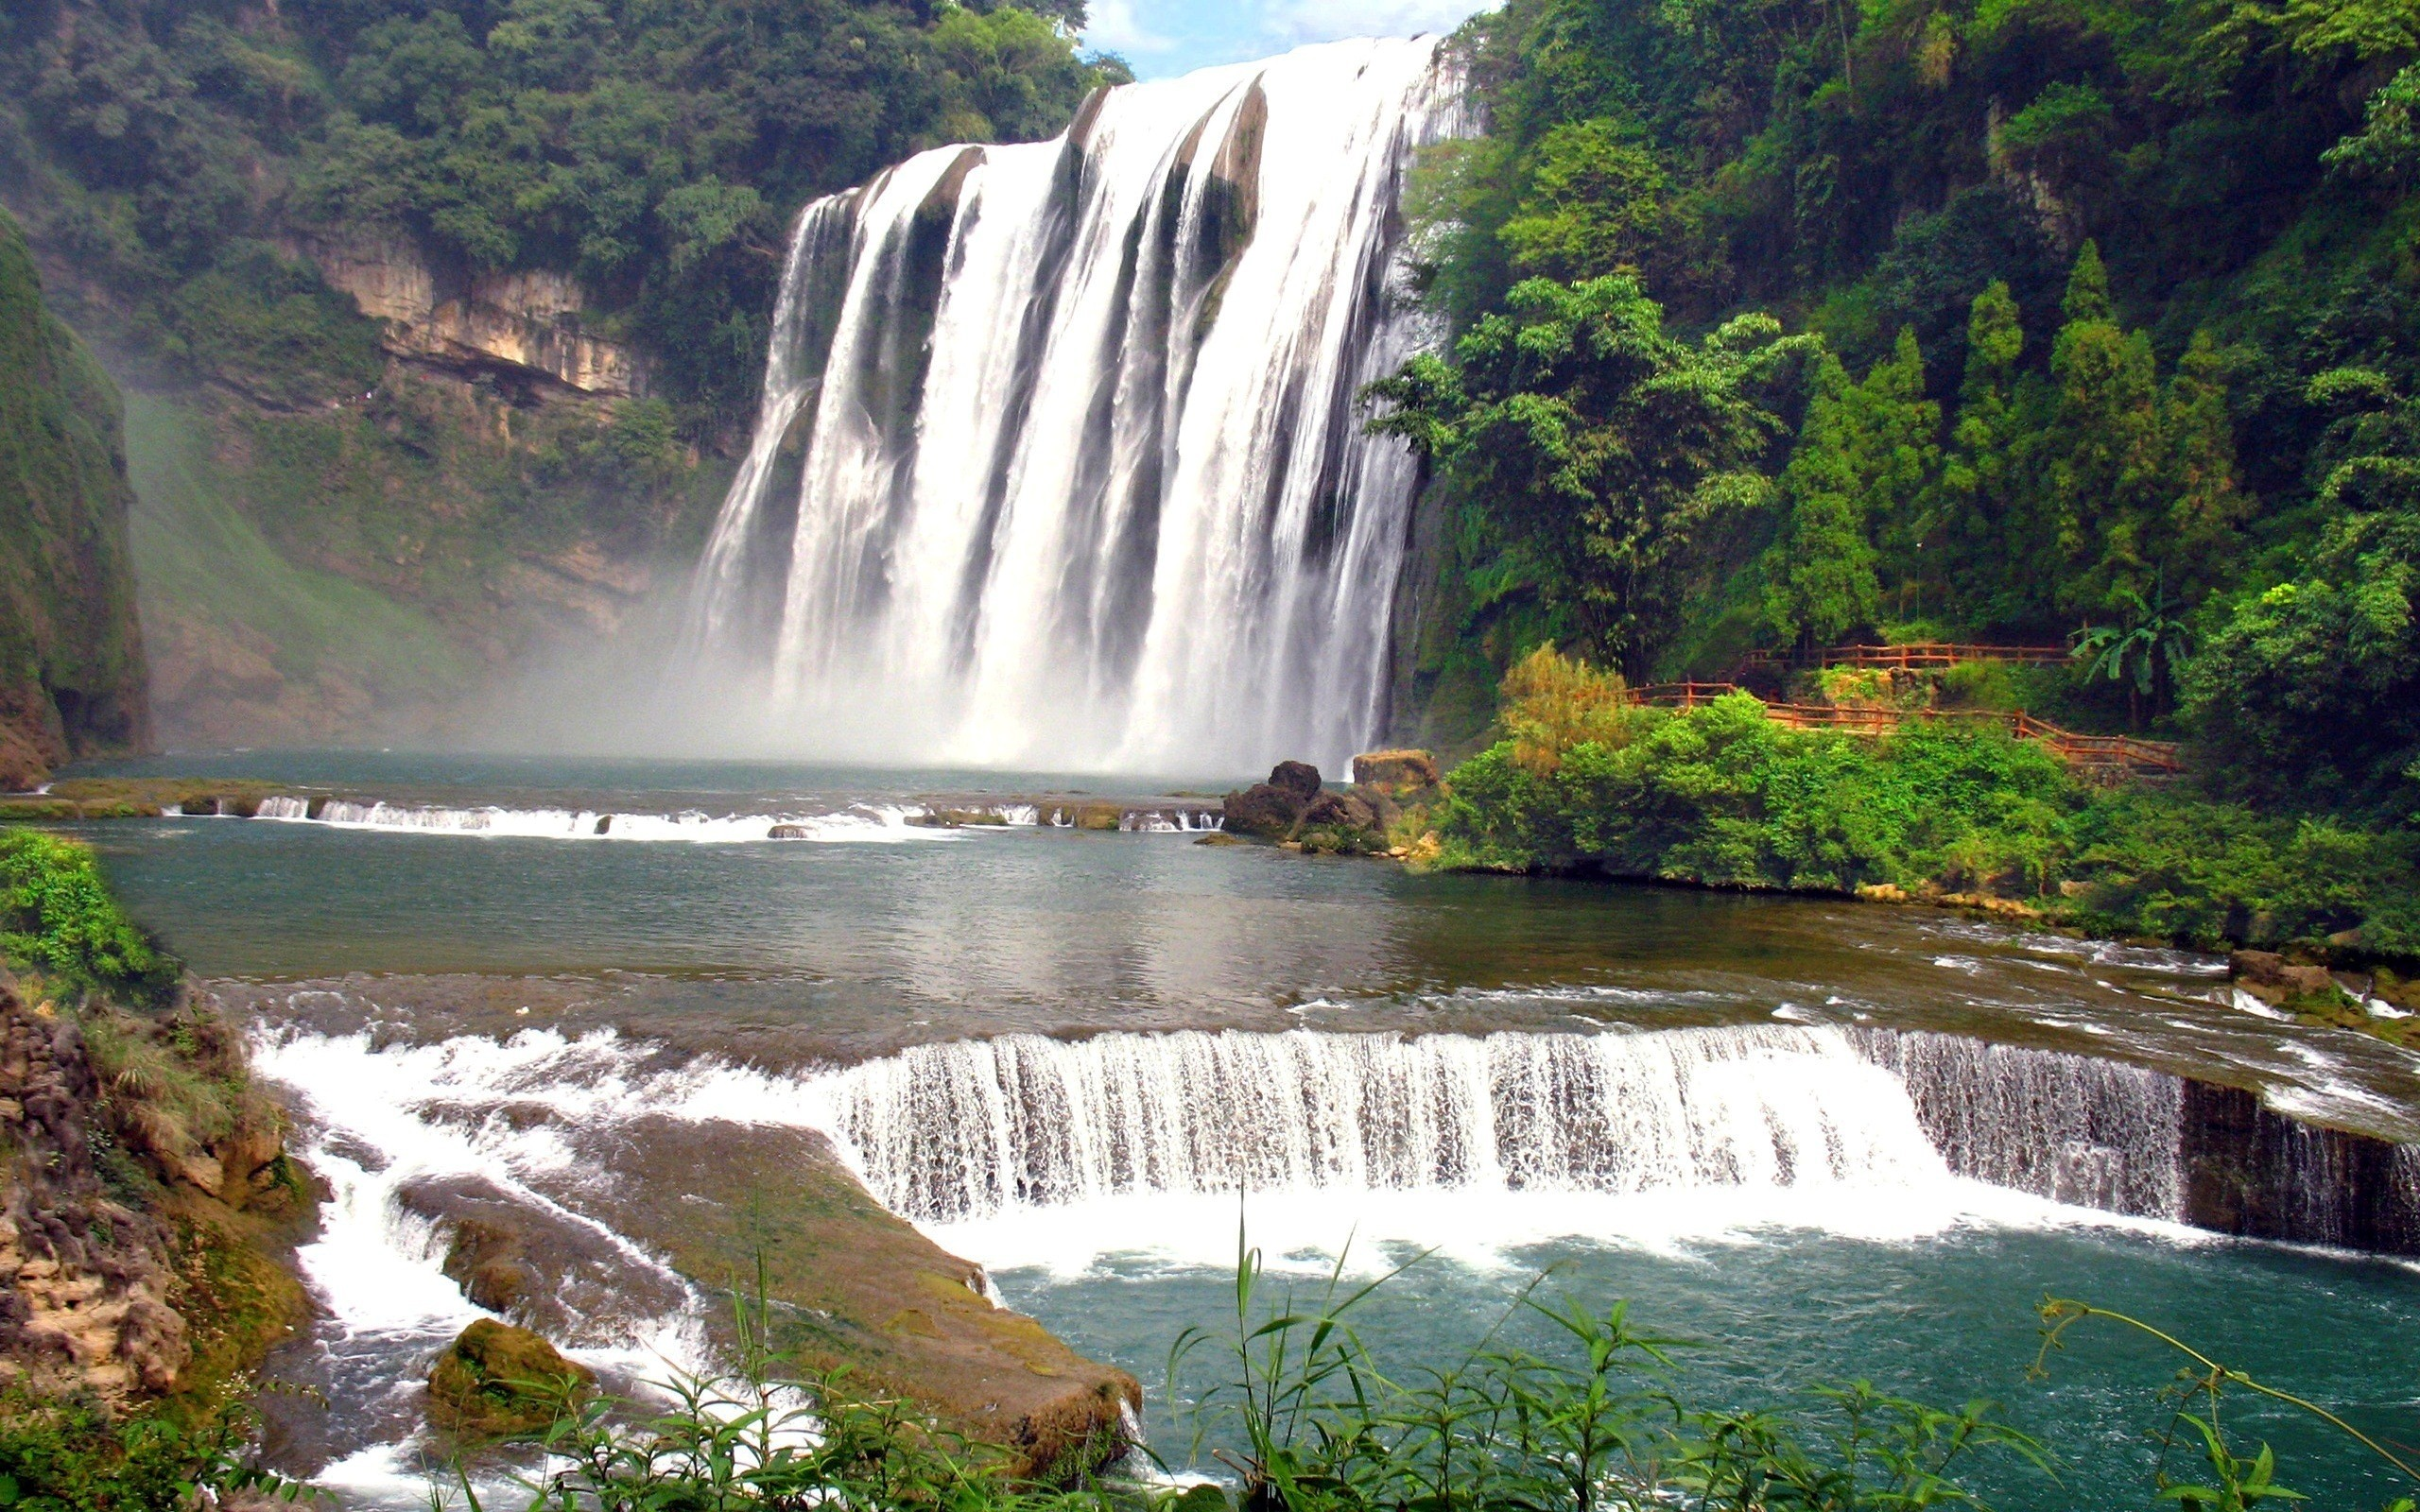 Great Falls Wallpapers Hd Widescreen Waterfall Background Pictures 183 ① Wallpapertag